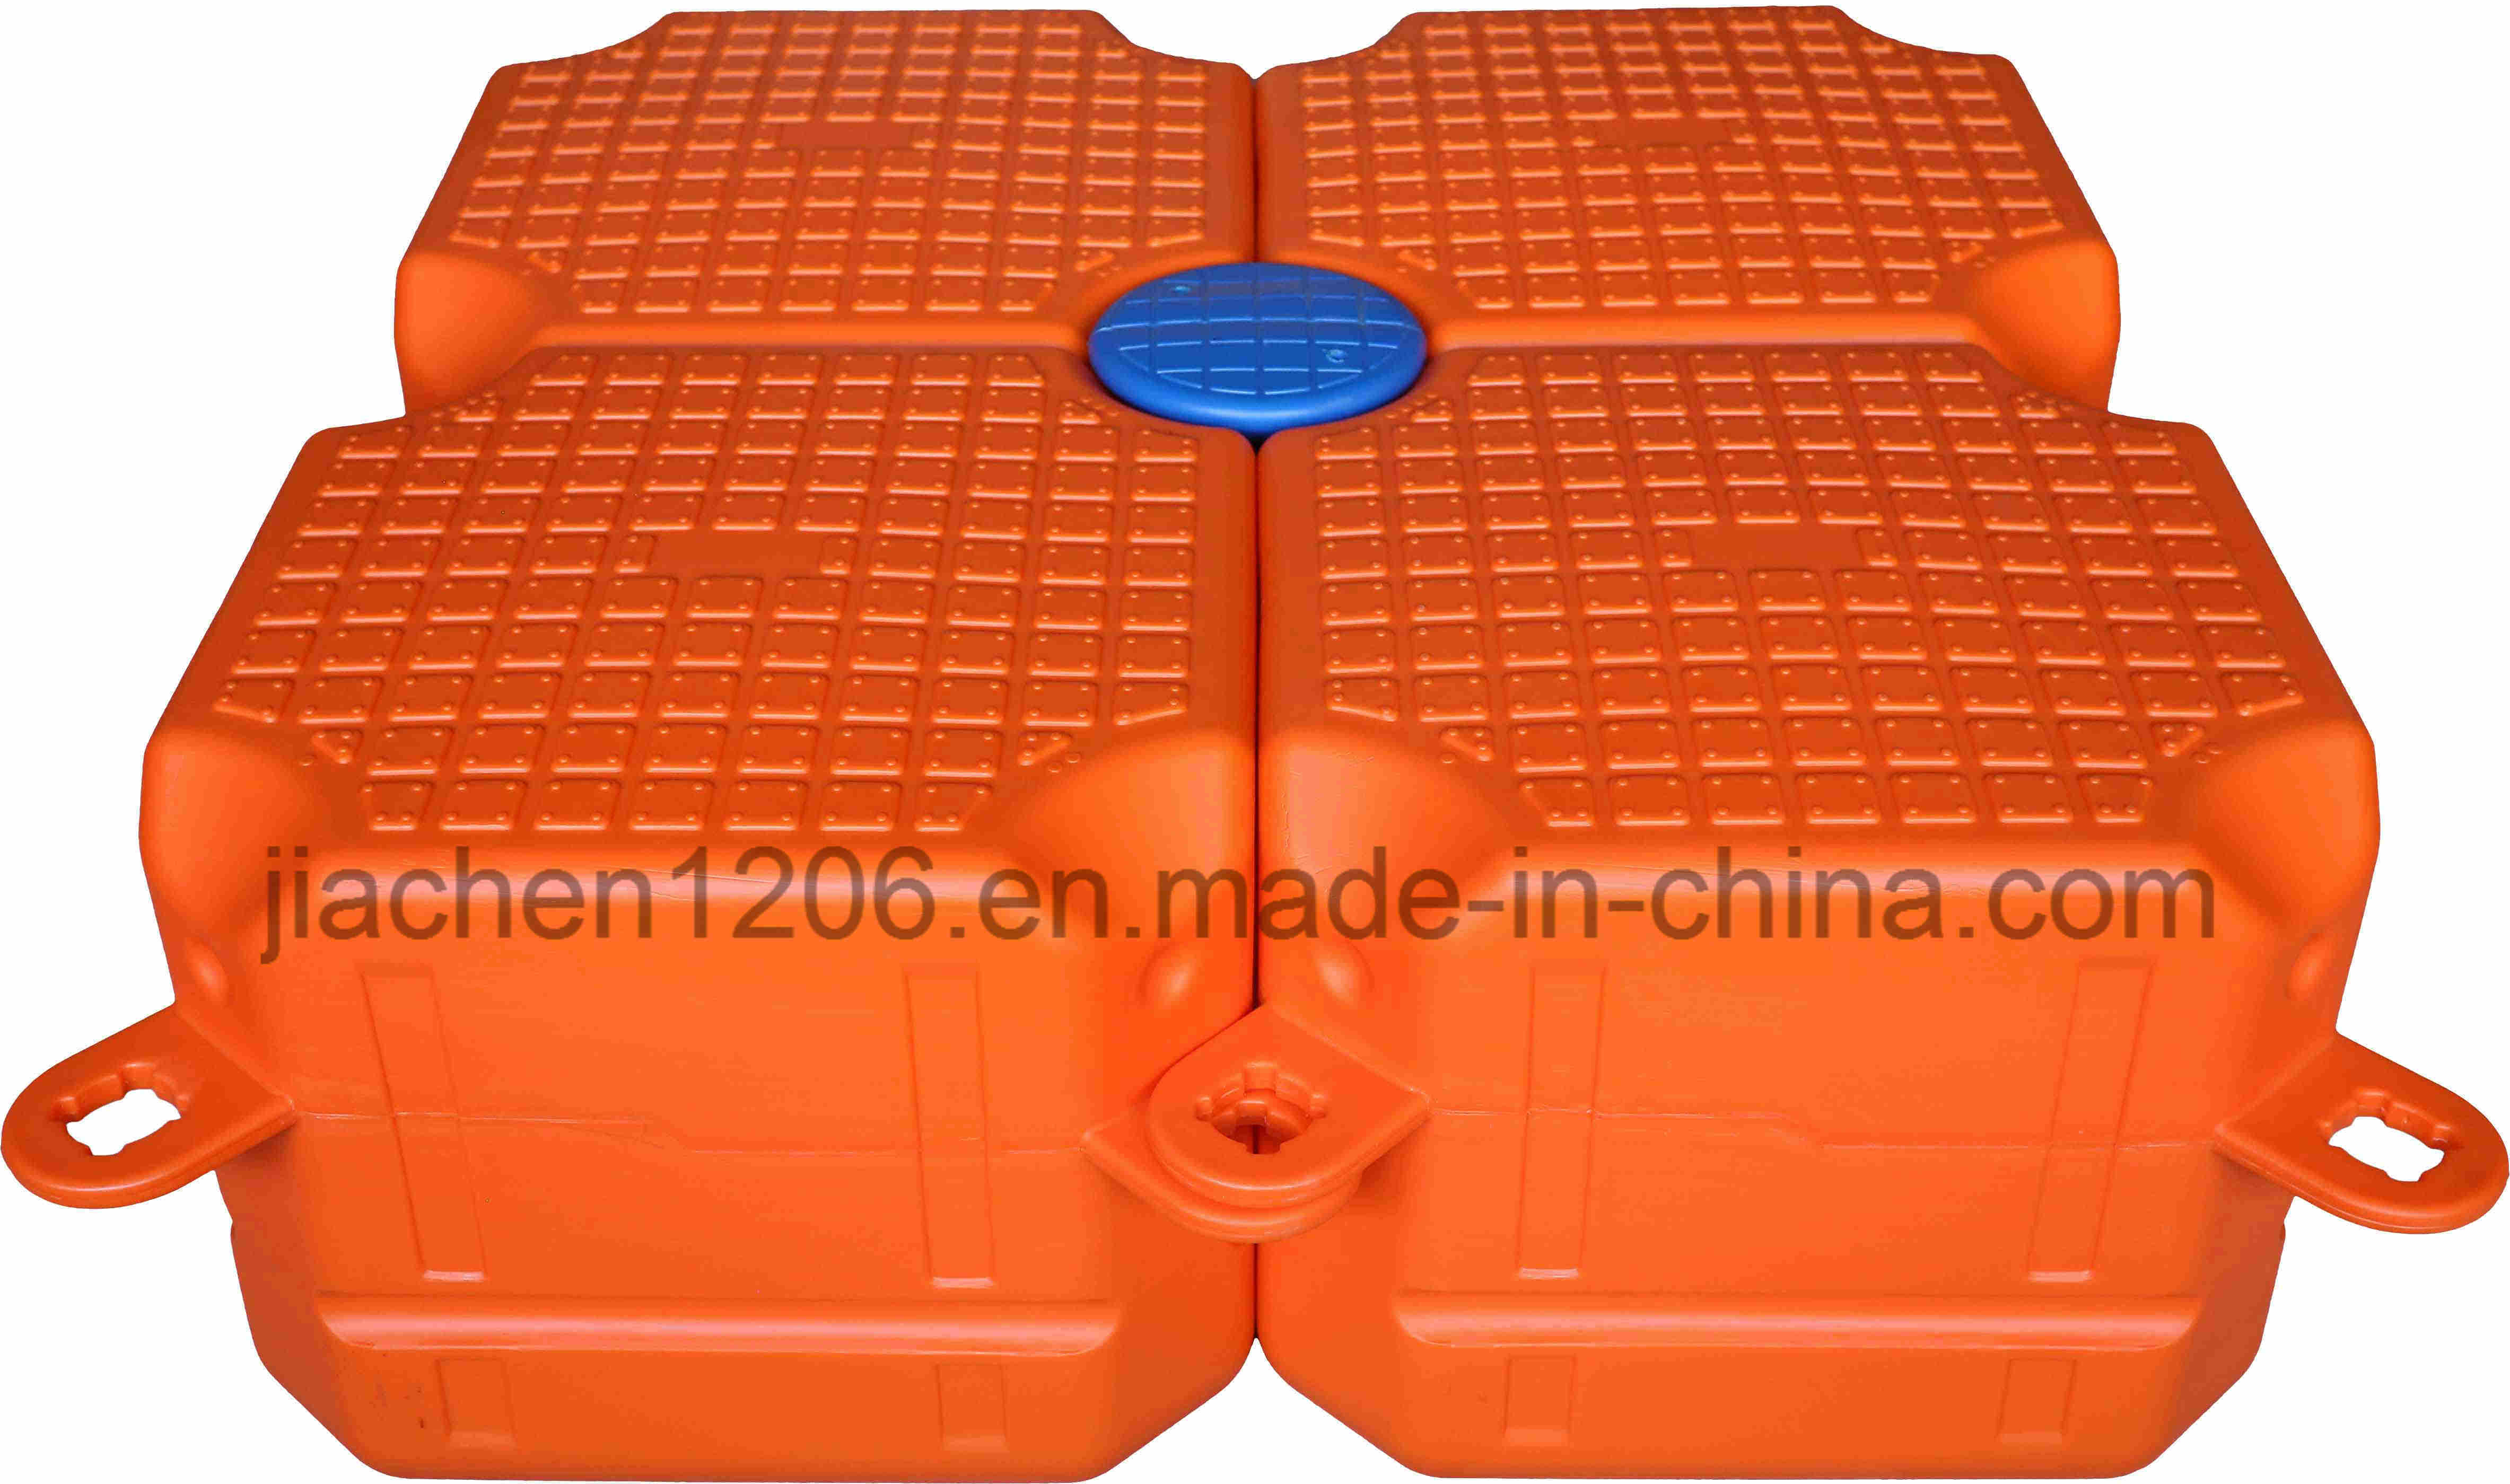 Popular Orange Single Cube Floating Dock Used Boat Docks for Sale